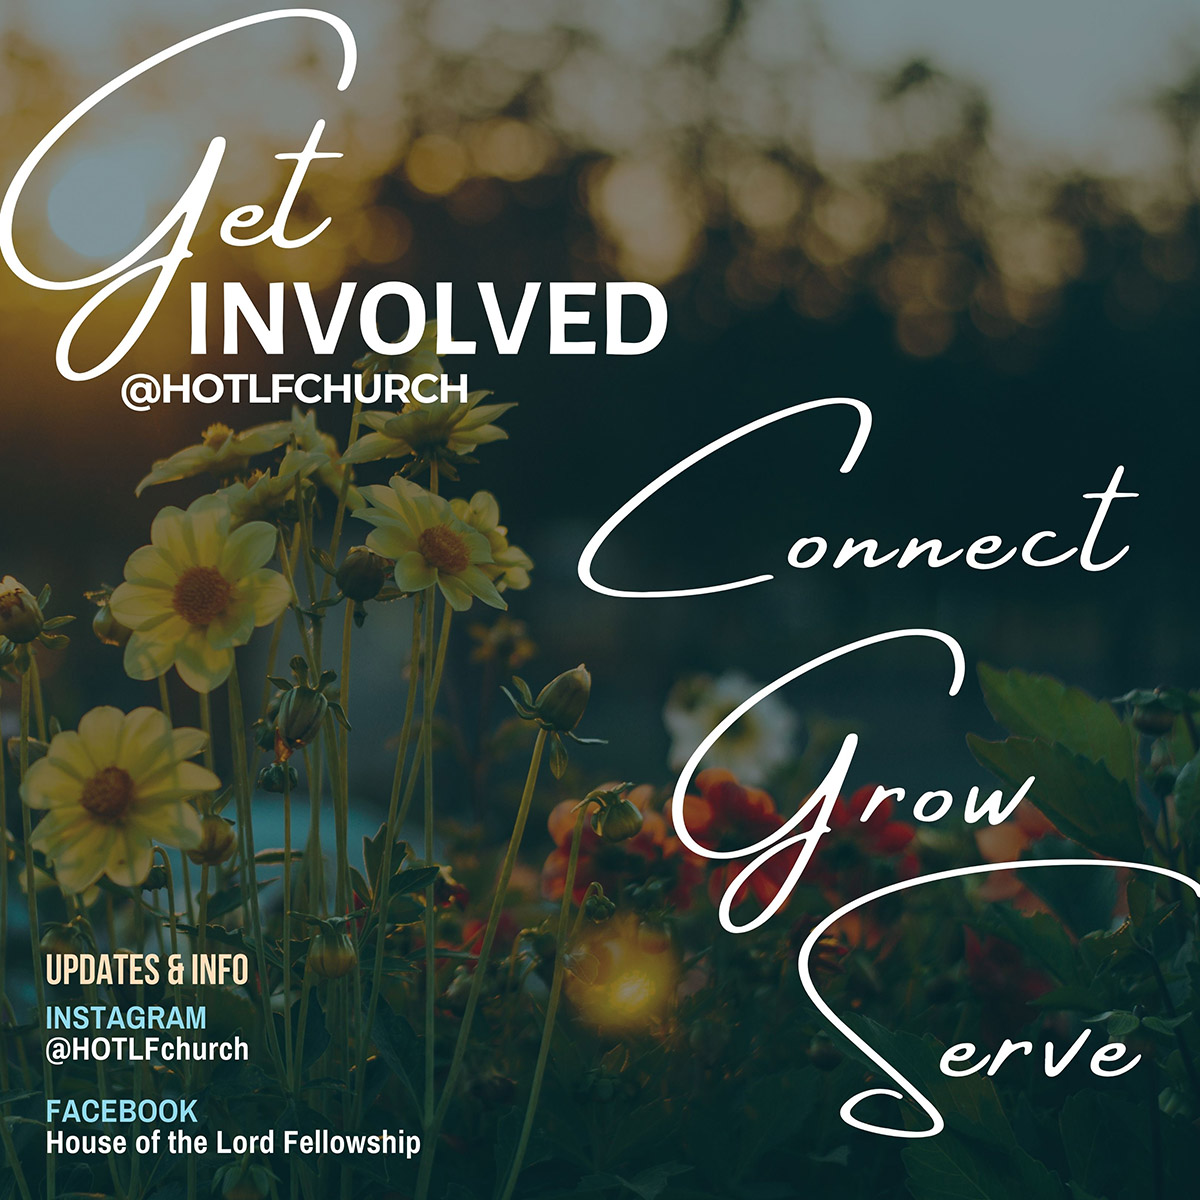 Sunday Service at House of the Lord Fellowship